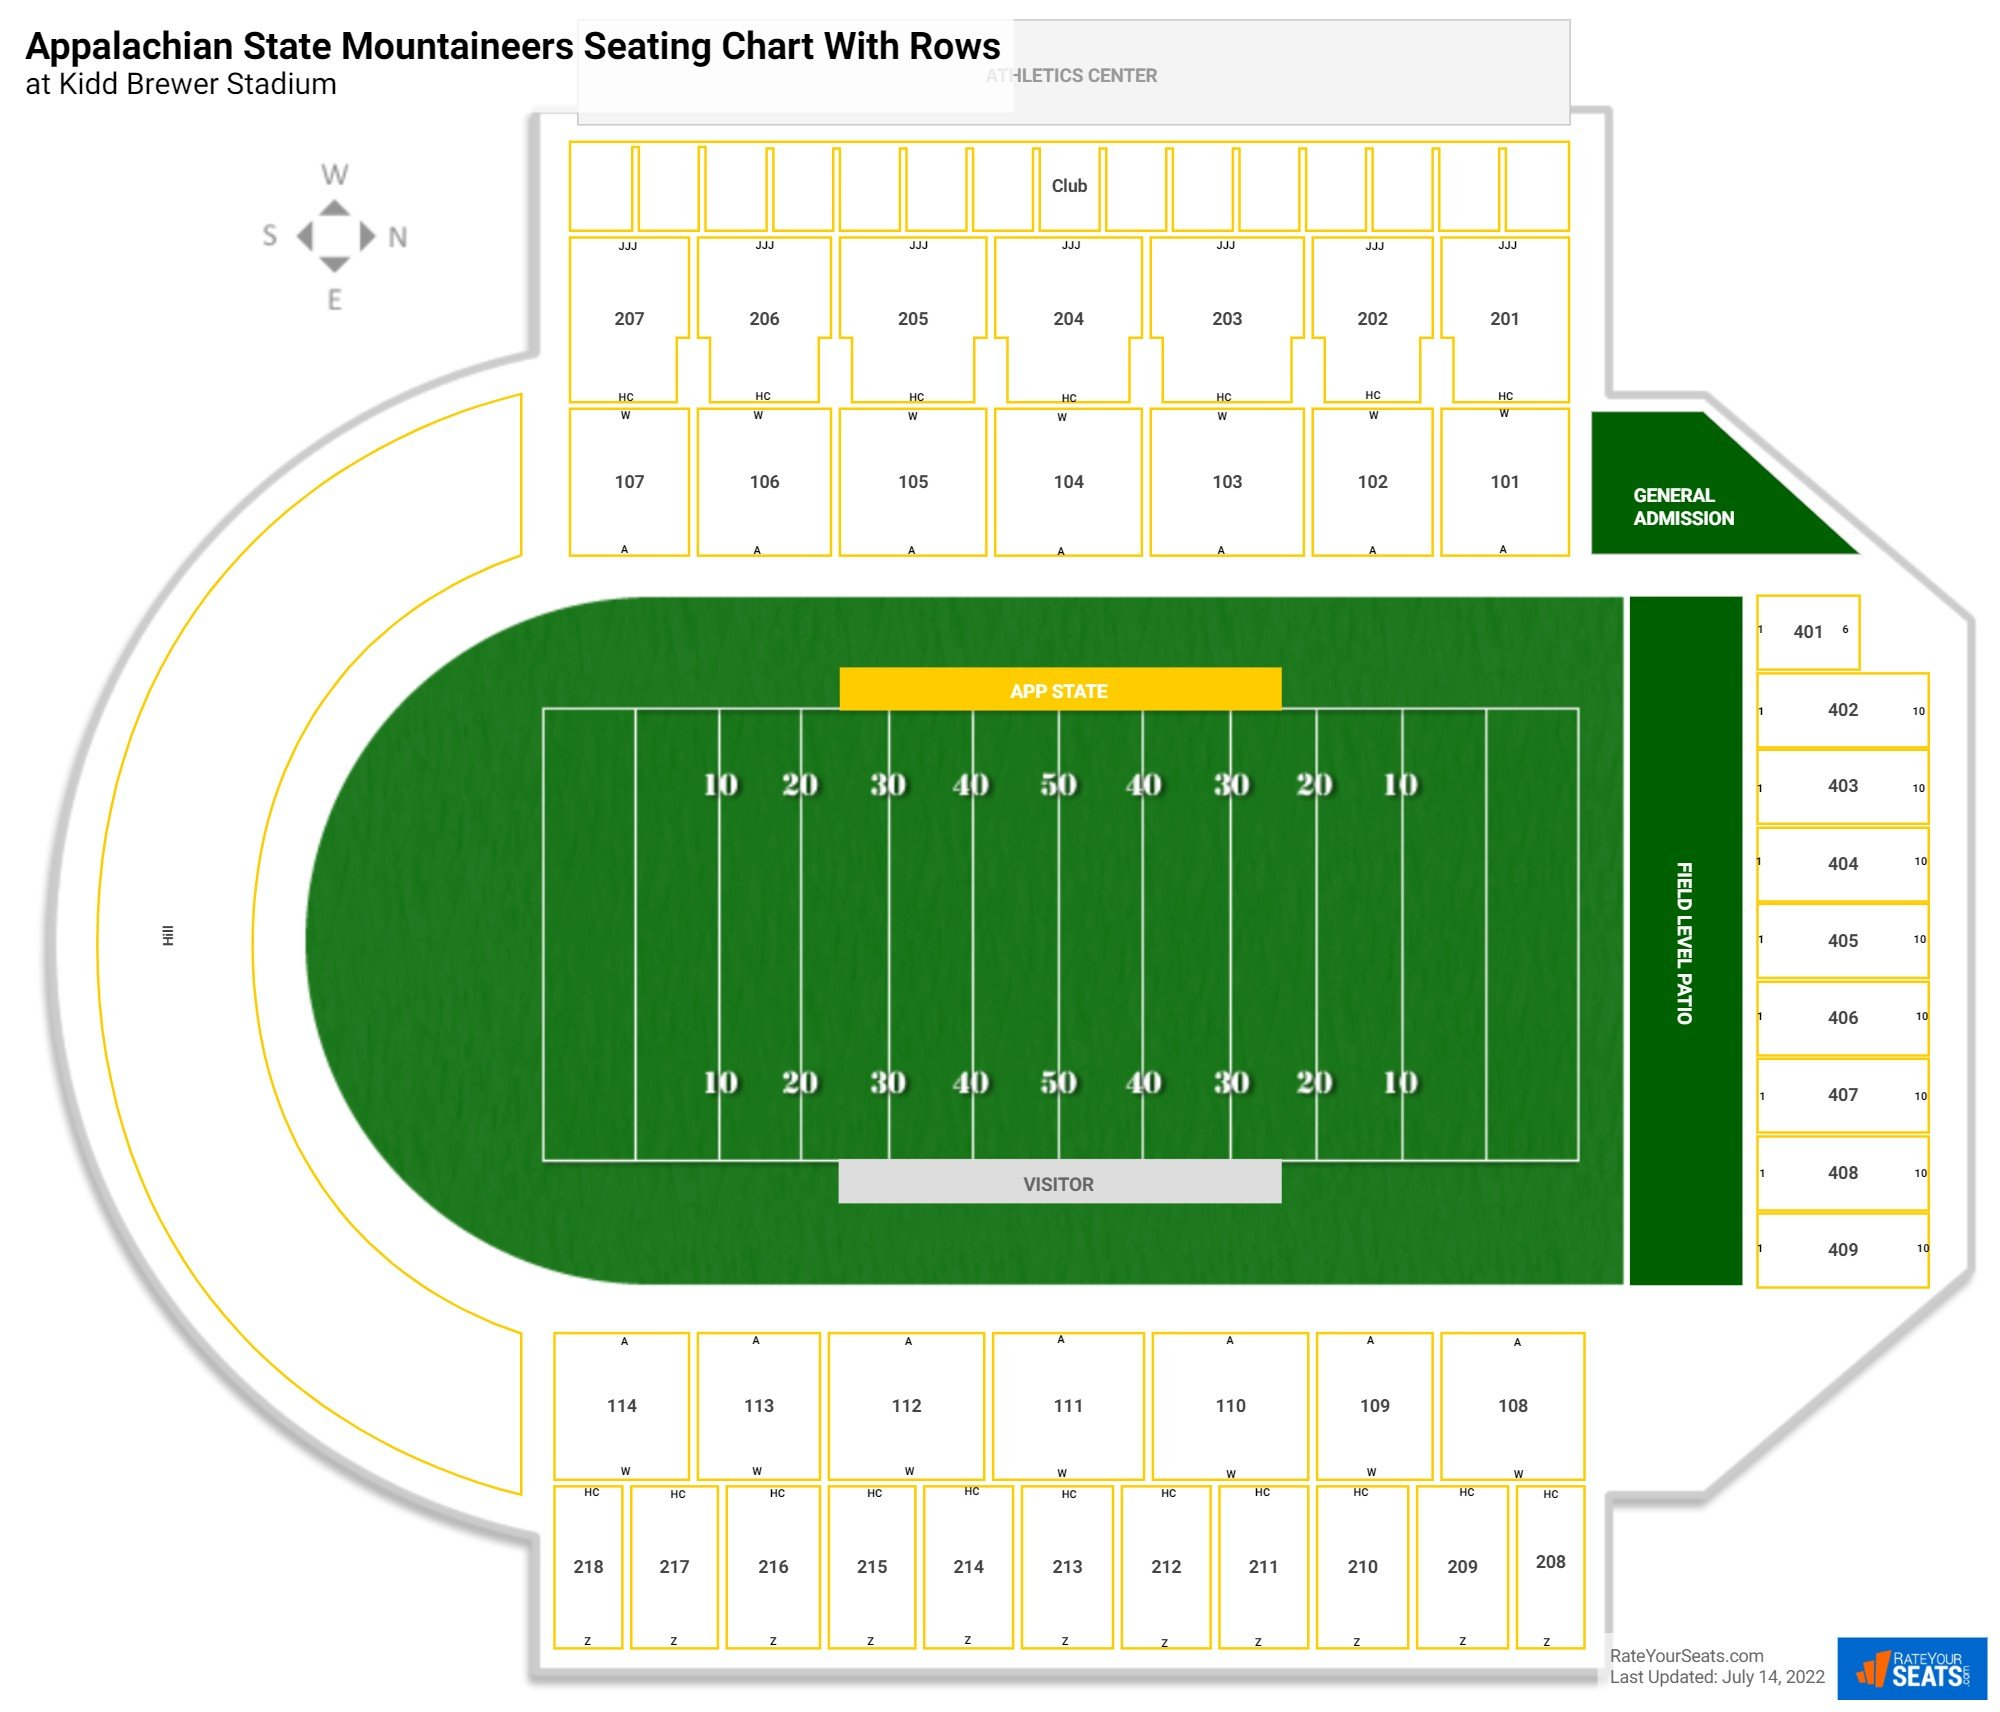 Kidd Brewer Stadium seating chart with rows